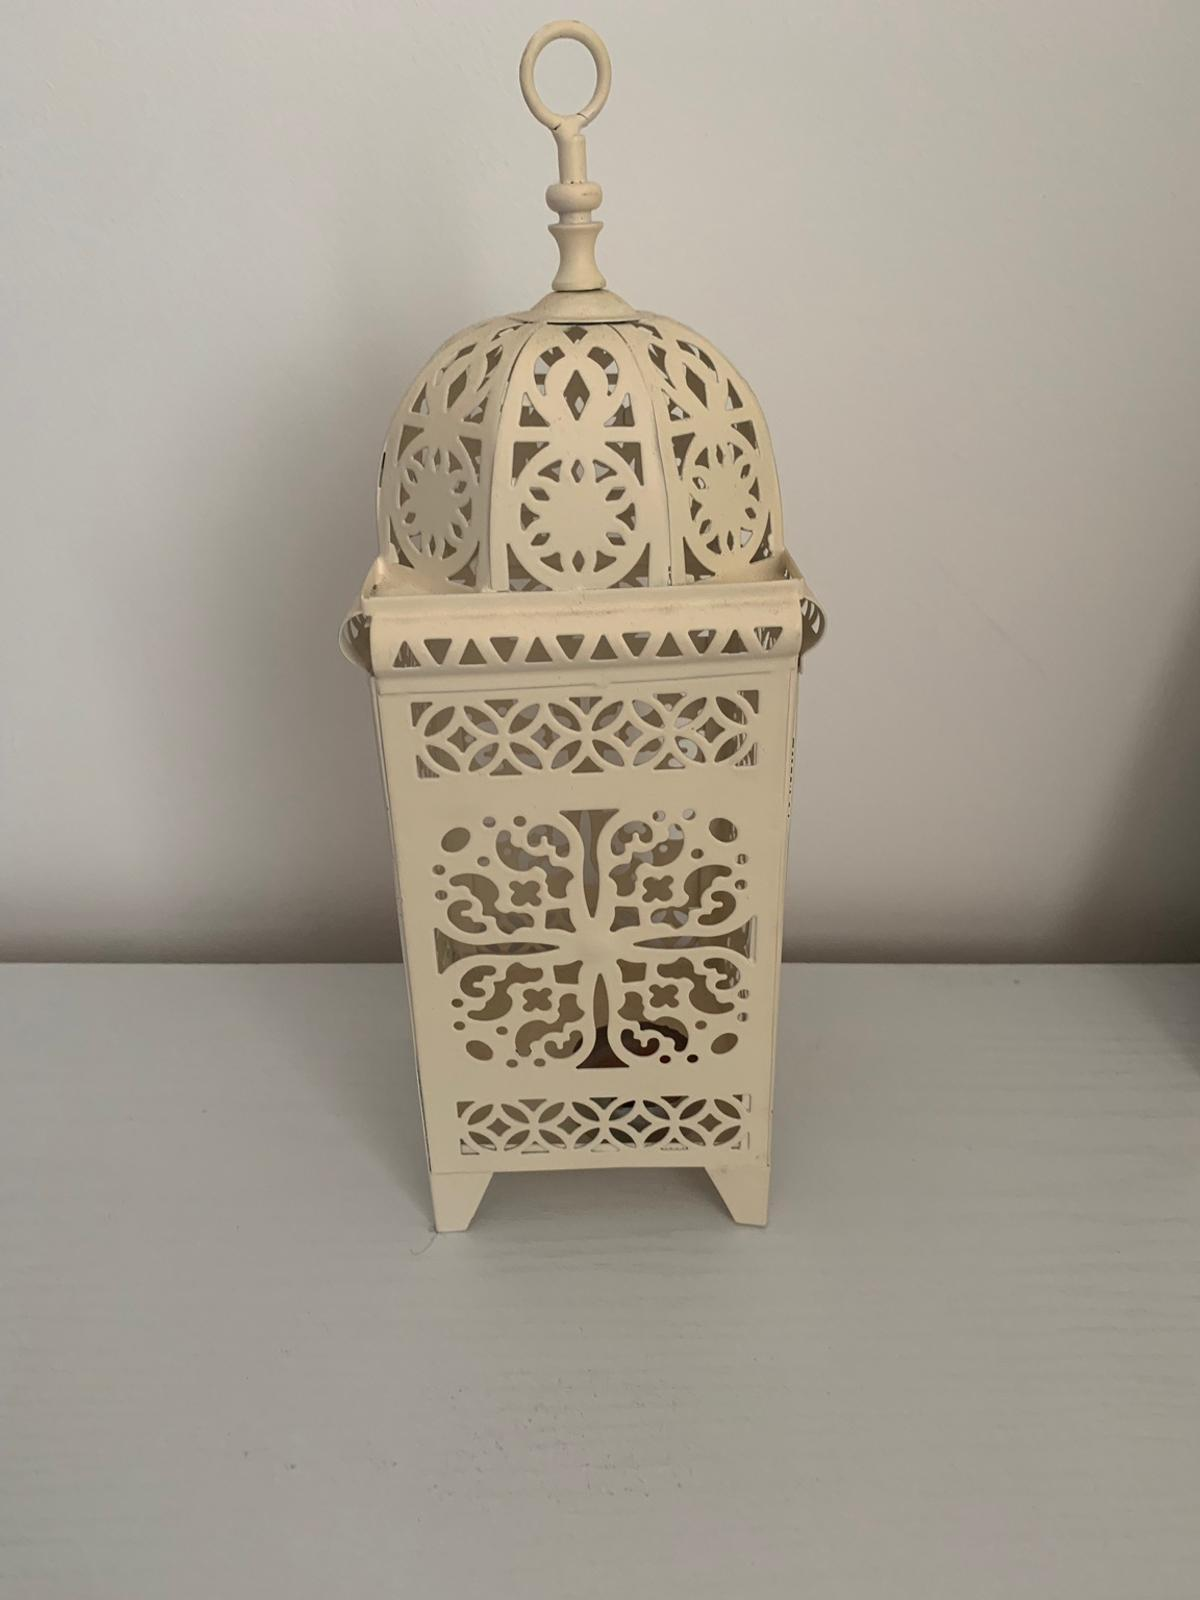 Decorative Bird Cage Candle Holder In B45 Bromsgrove For 4 00 For